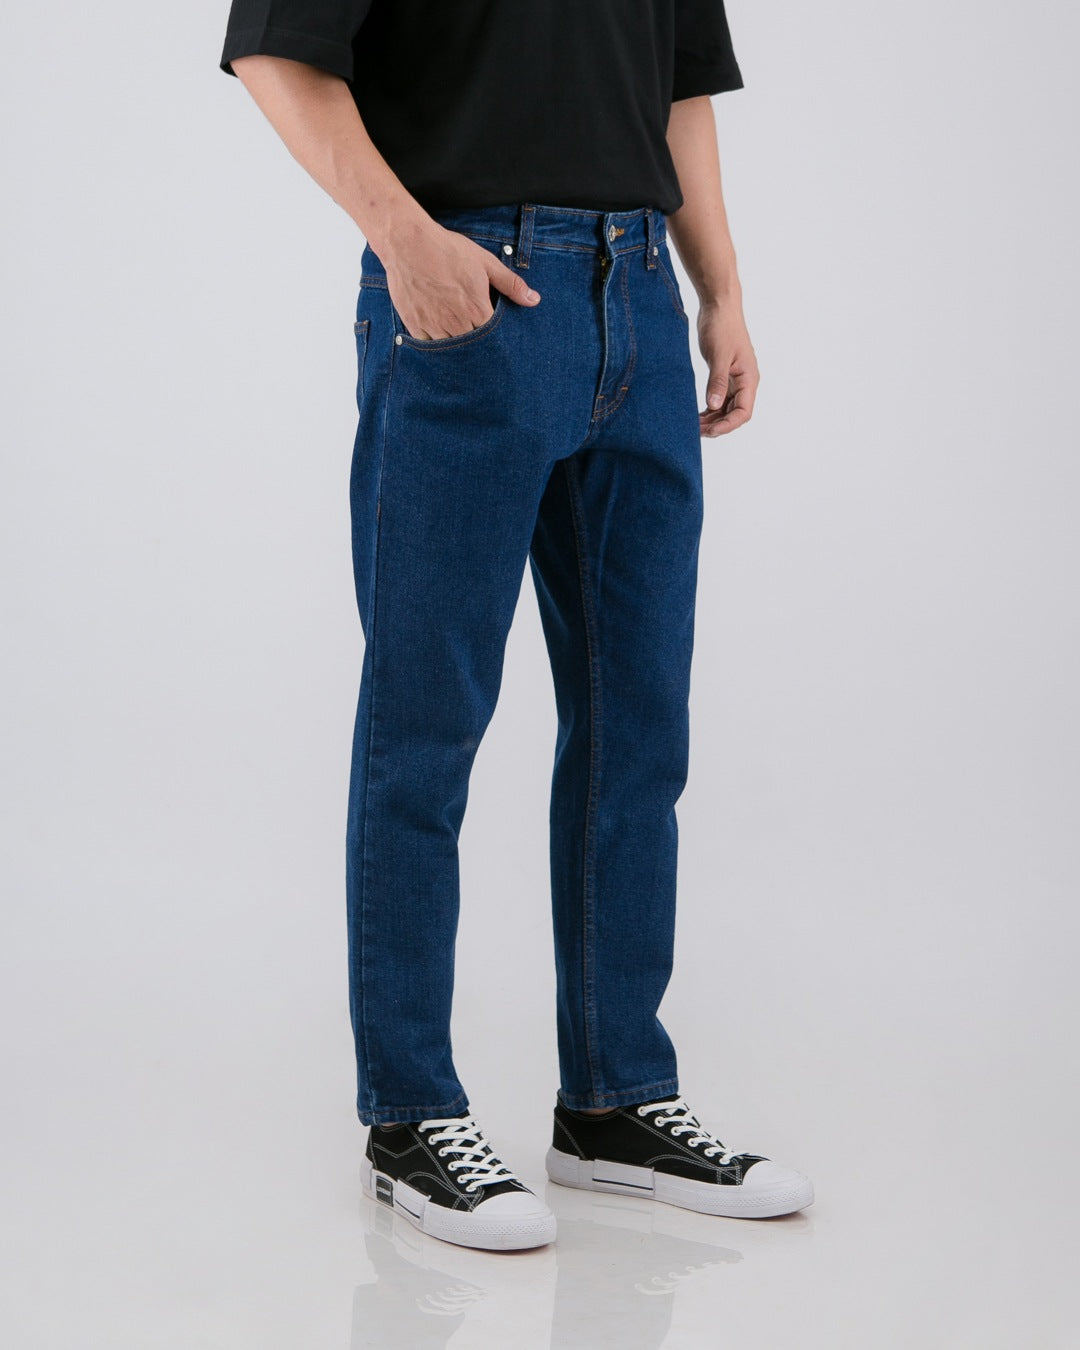 Nml Jeans Slim Non Stretch Mid Blue